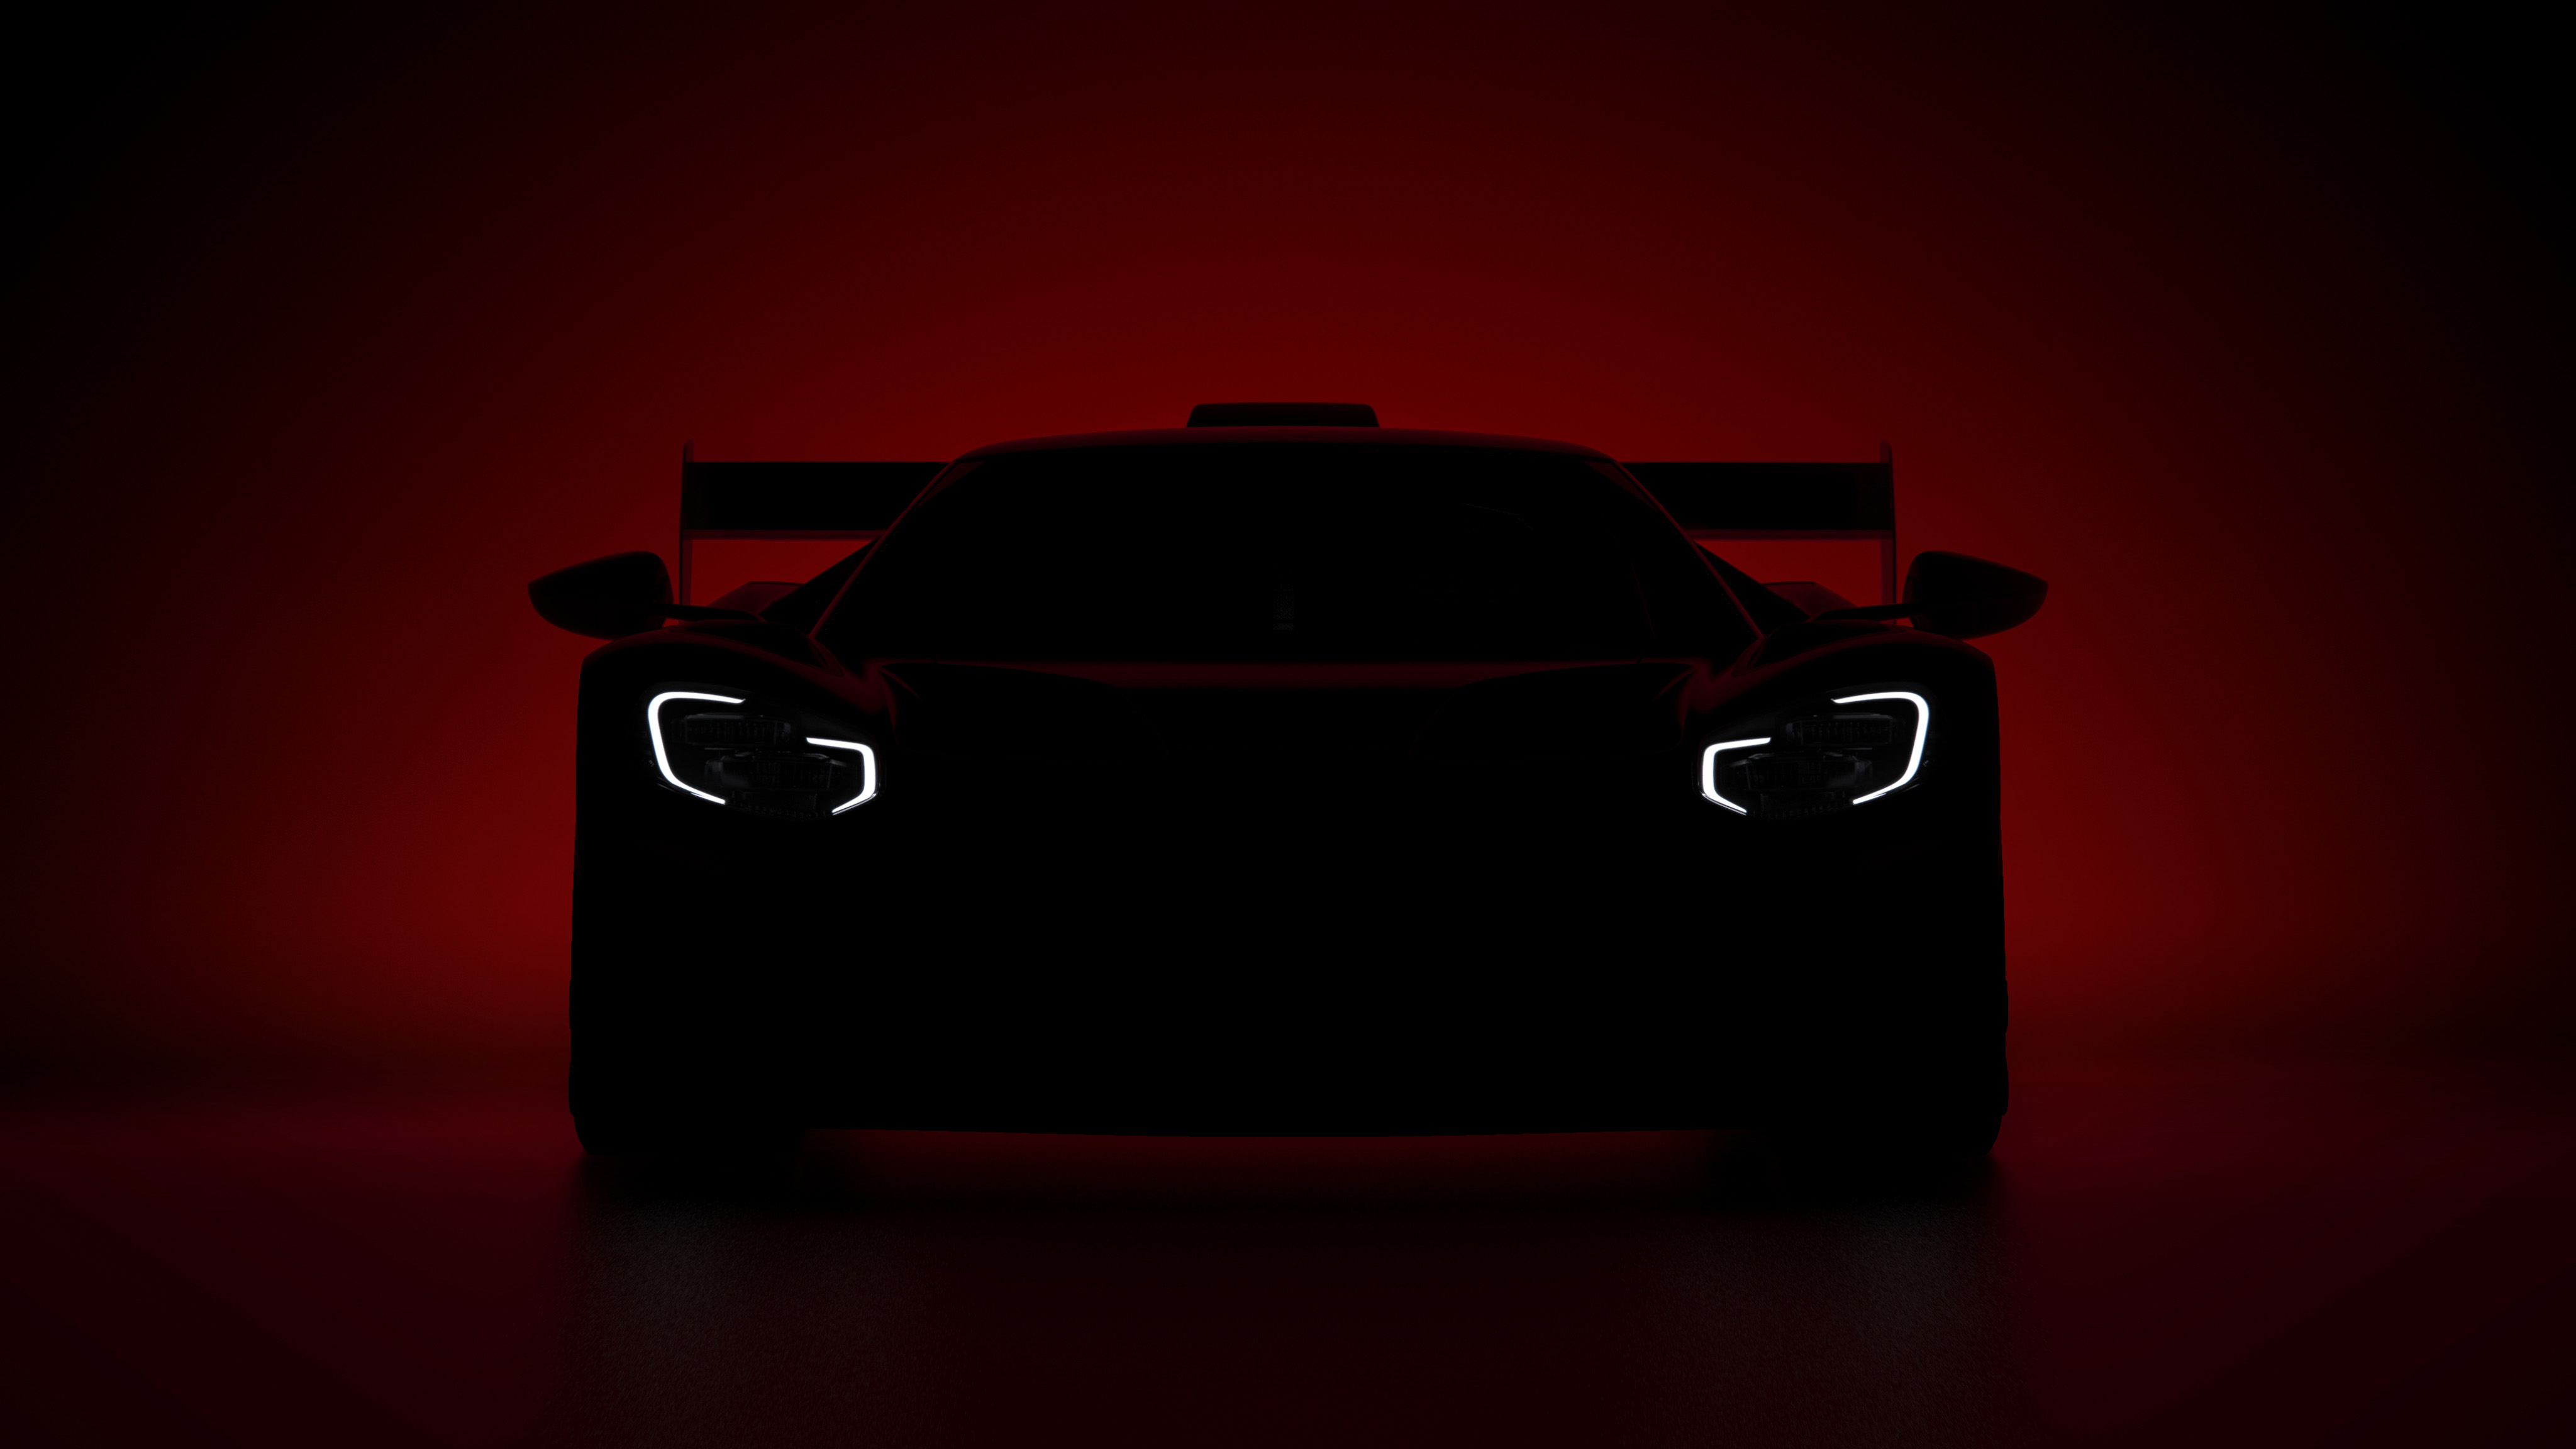 Ford teases new GT supercar variant ahead of July 4th reveal